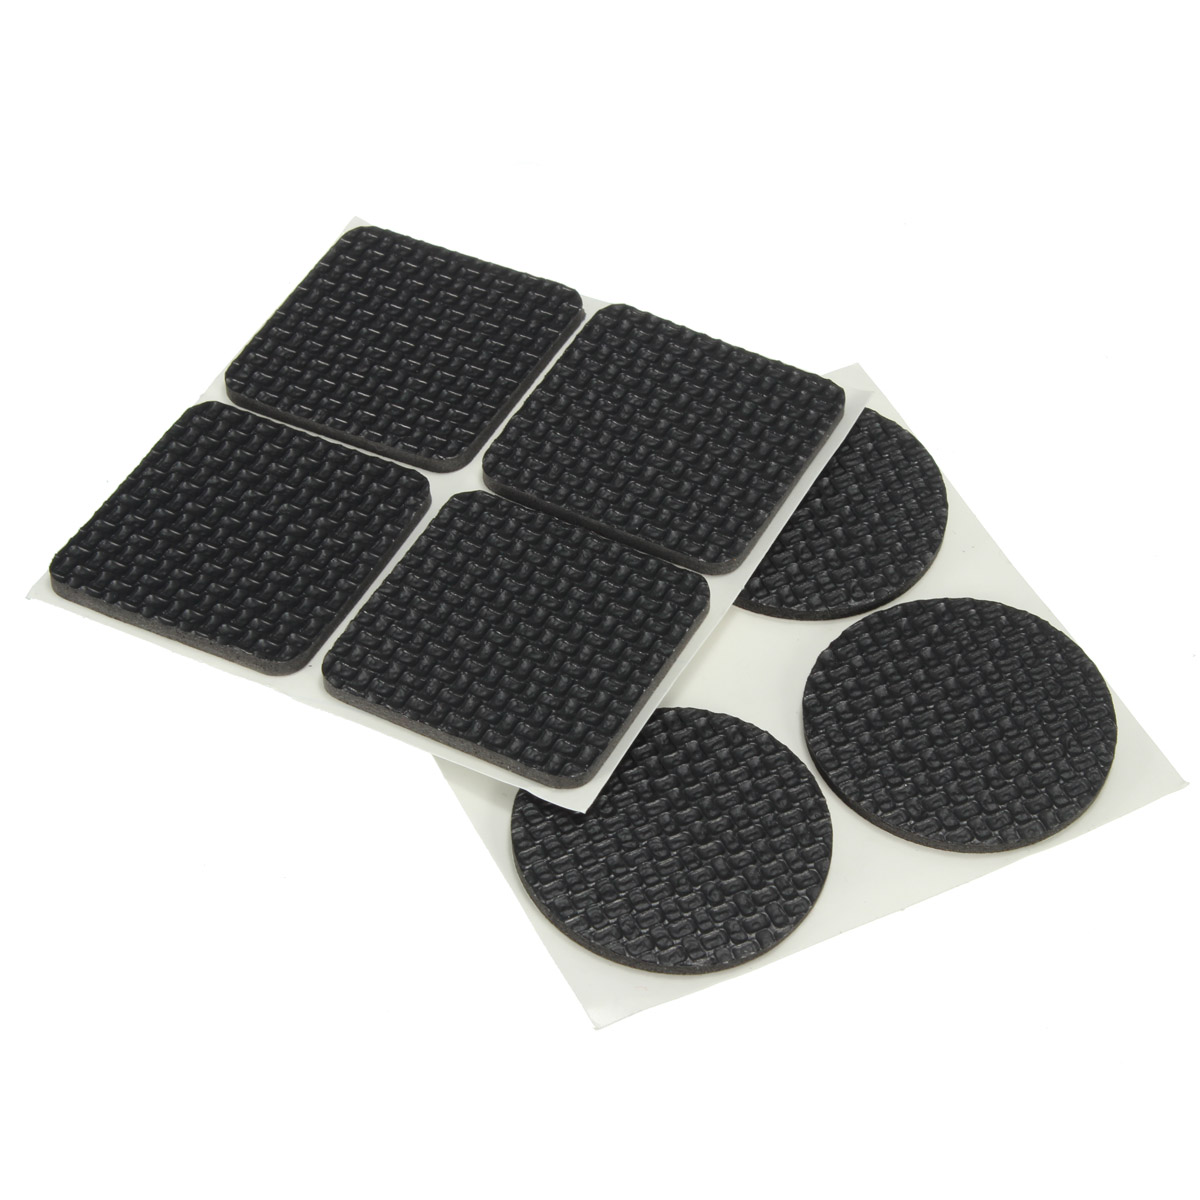 Chair Feet Pads 4pcs Adhesive Rubber Furniture Table Feet Floor Protector